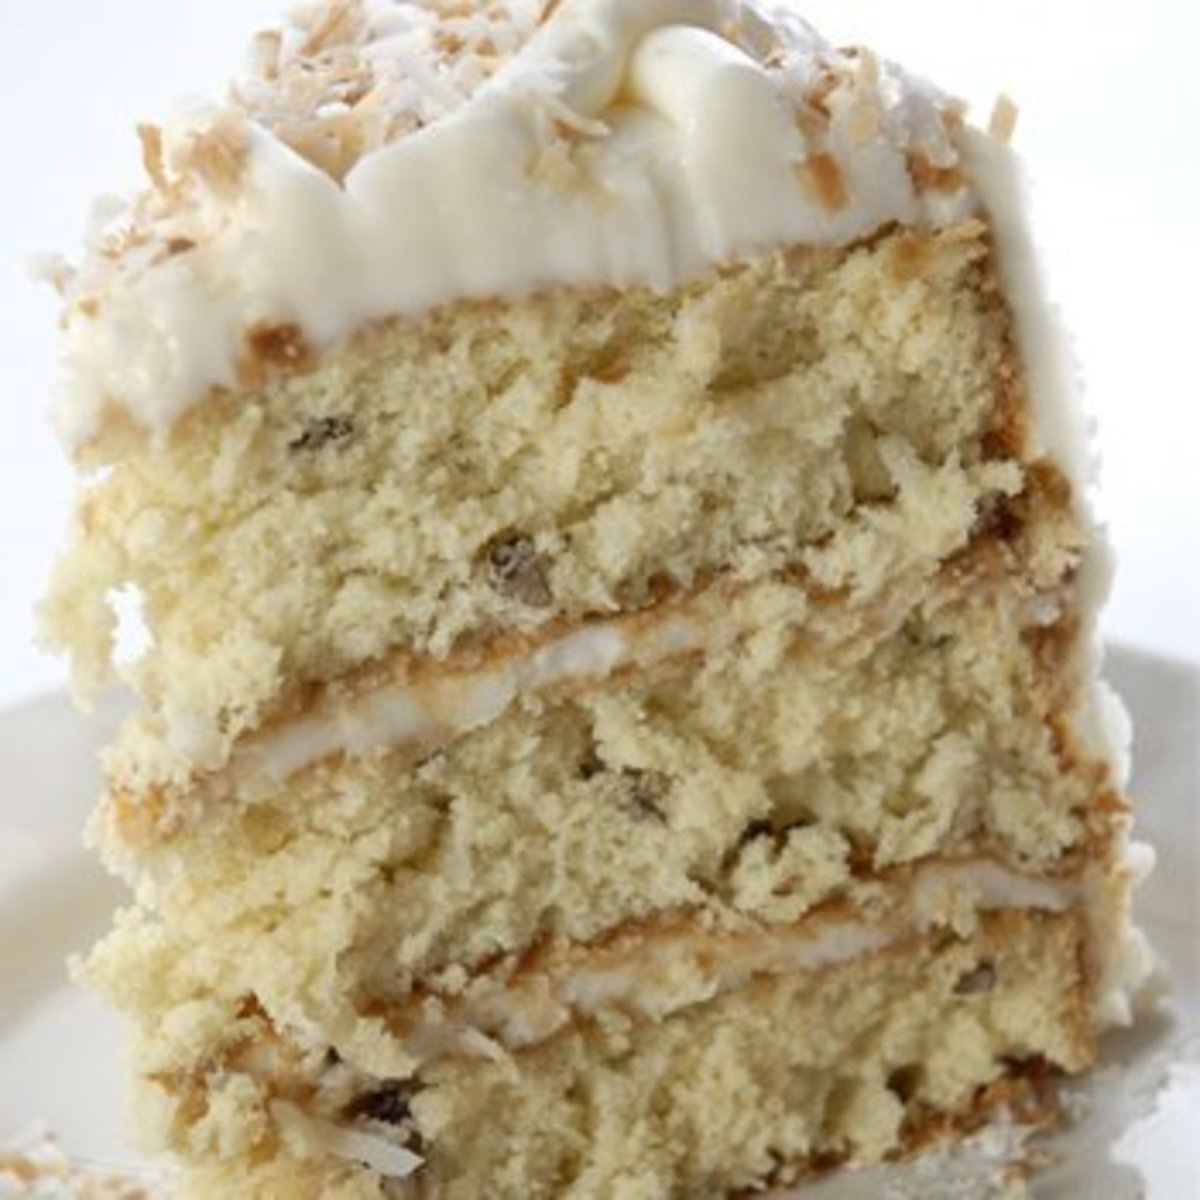 A slice of Italian Cream cake - perfect for birthdays, graduations and other special occasions